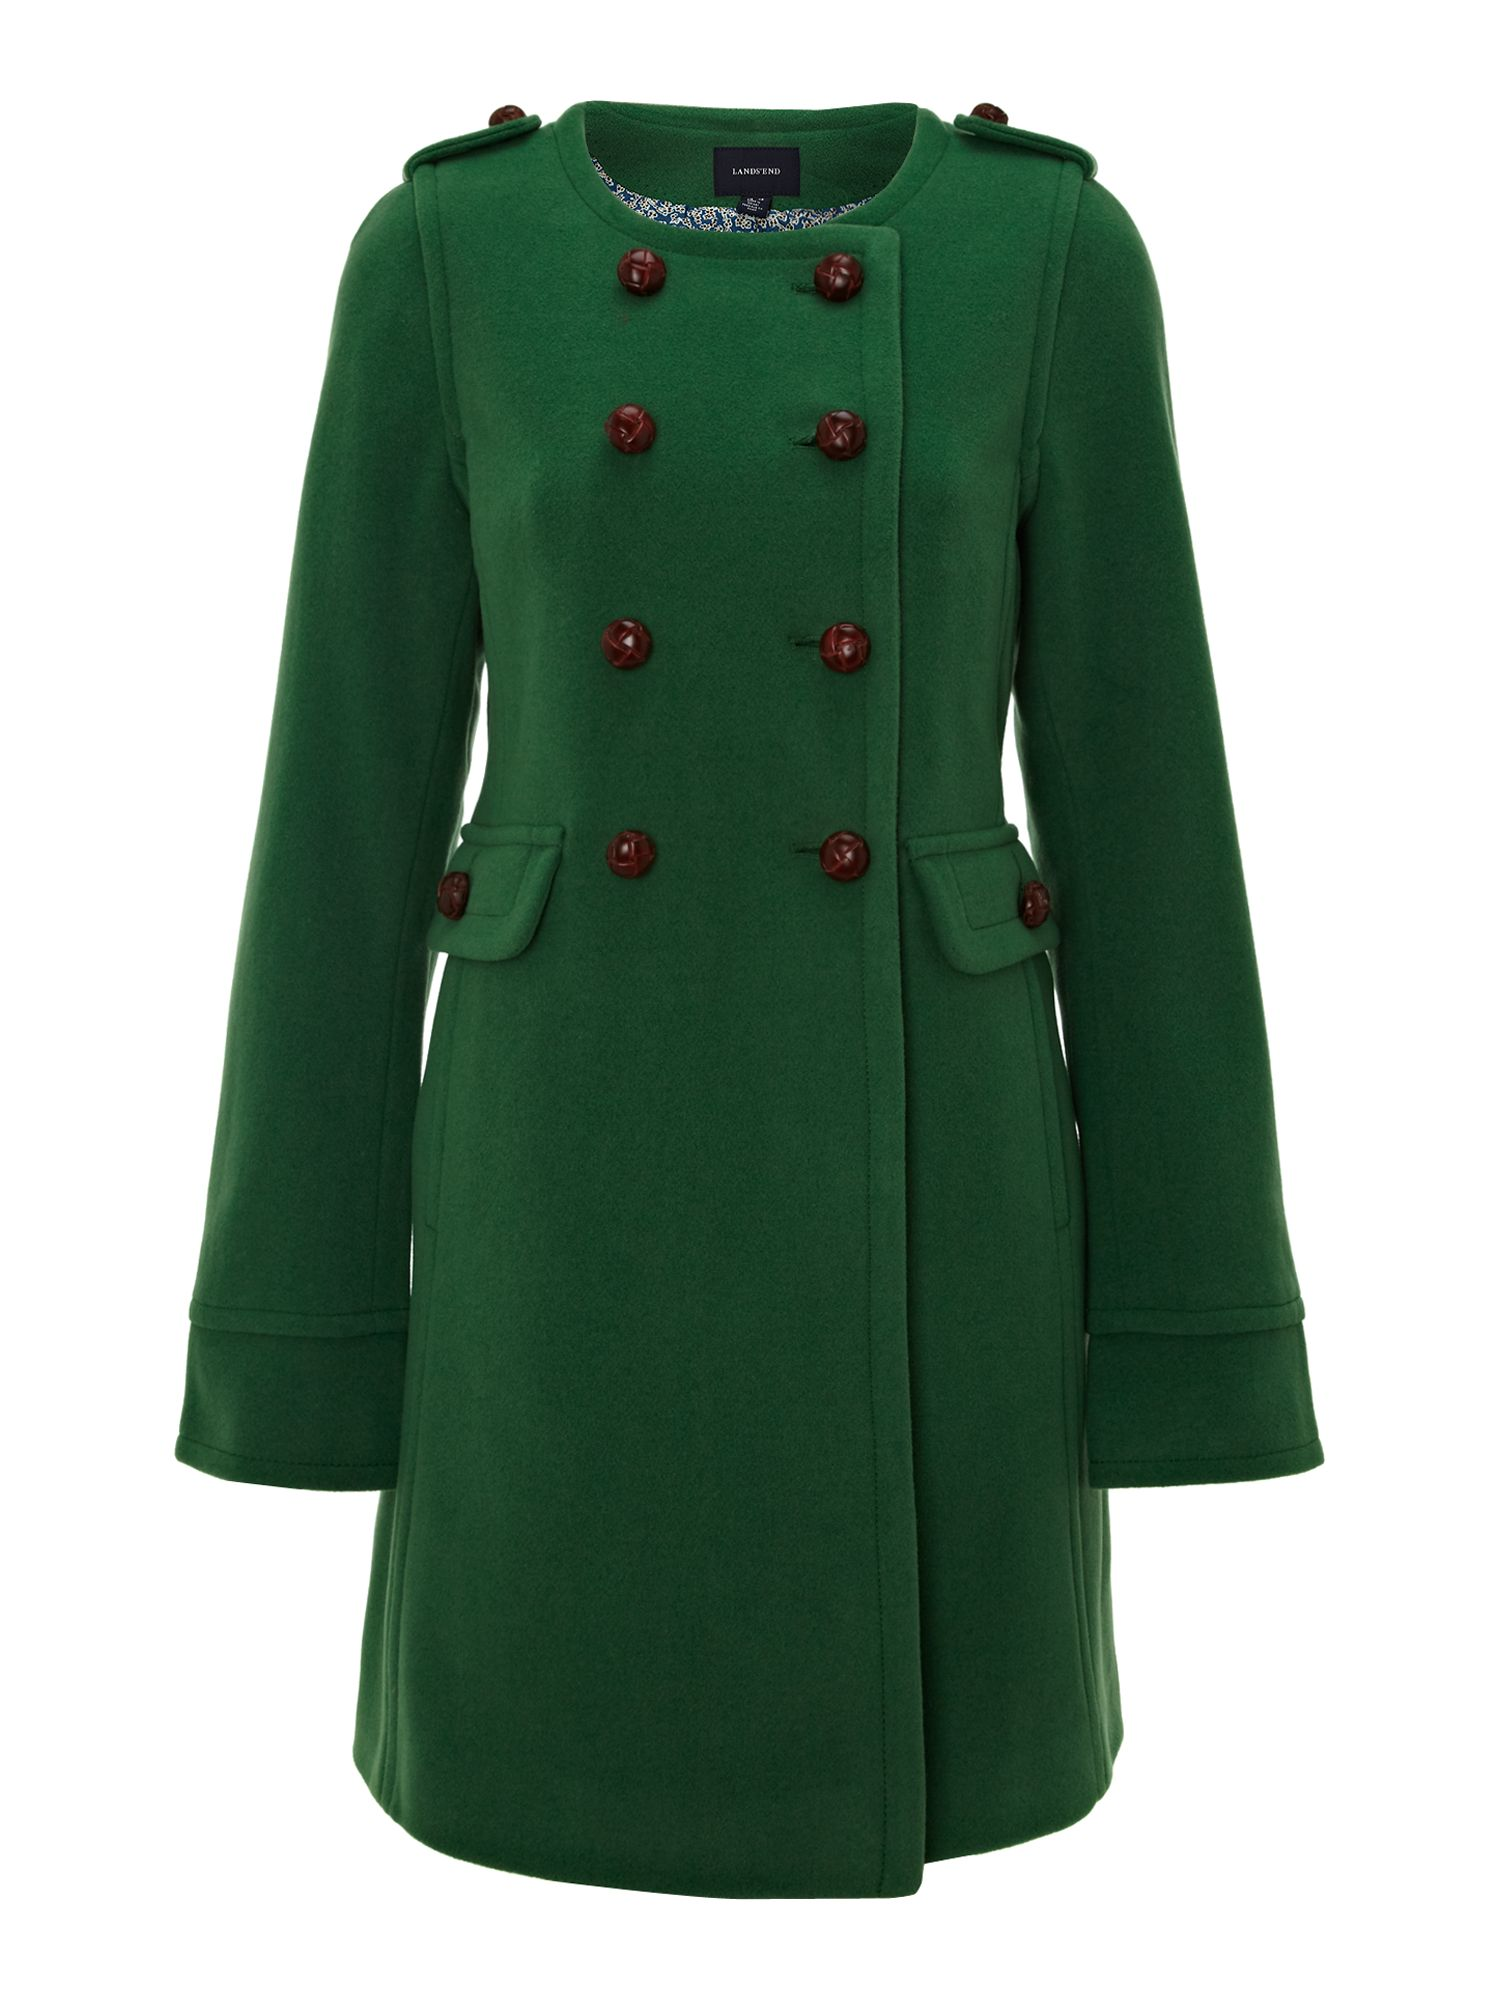 Green Coats For Women